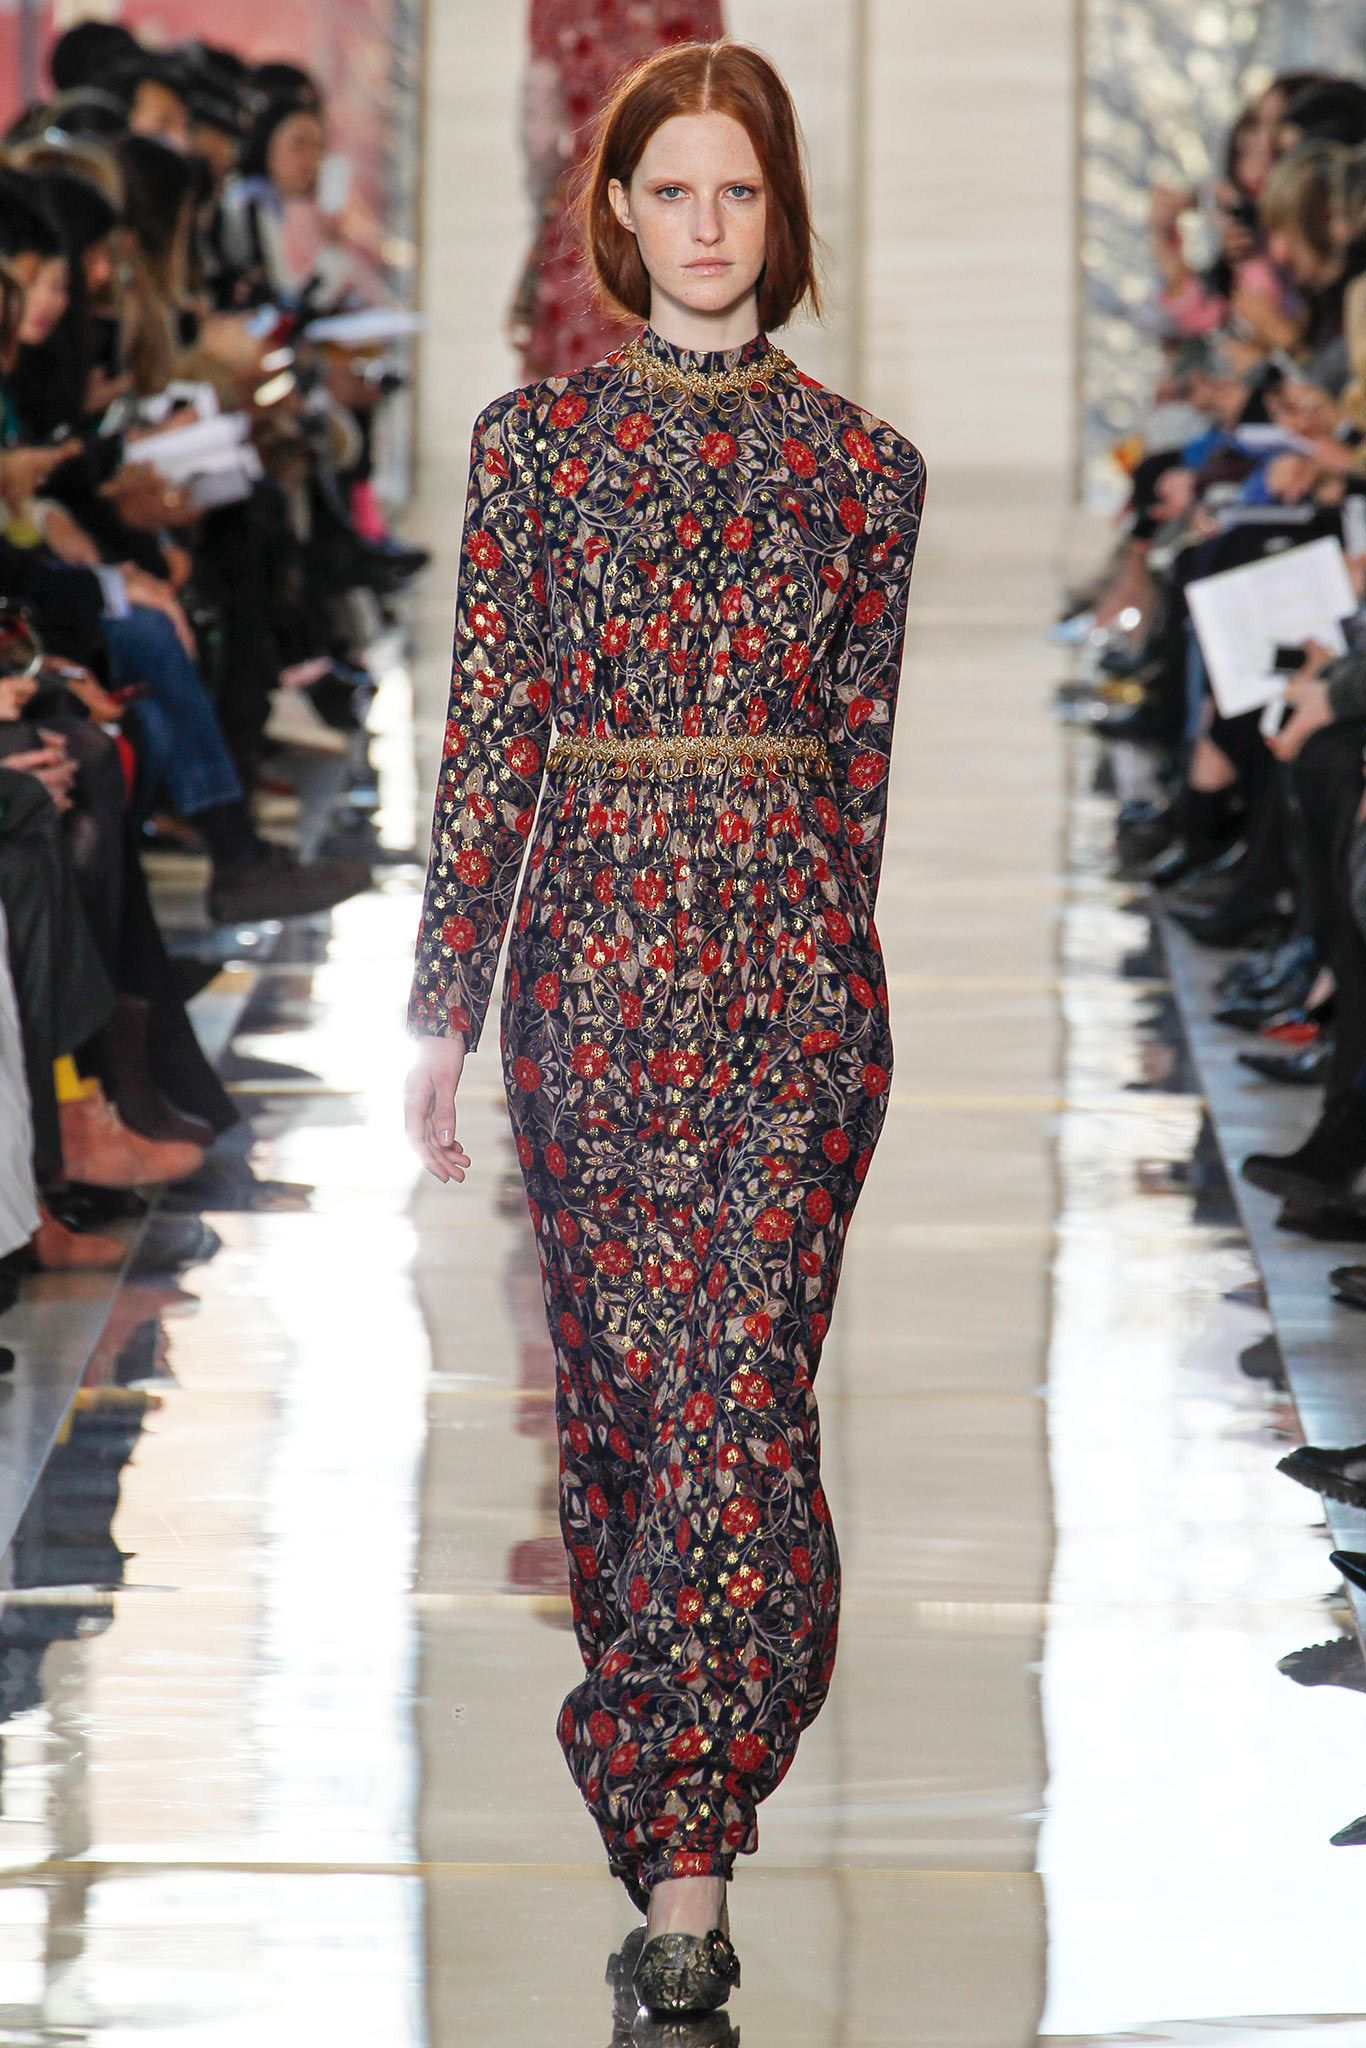 Burch tory fall 2104 runway review recommendations to wear in on every day in 2019